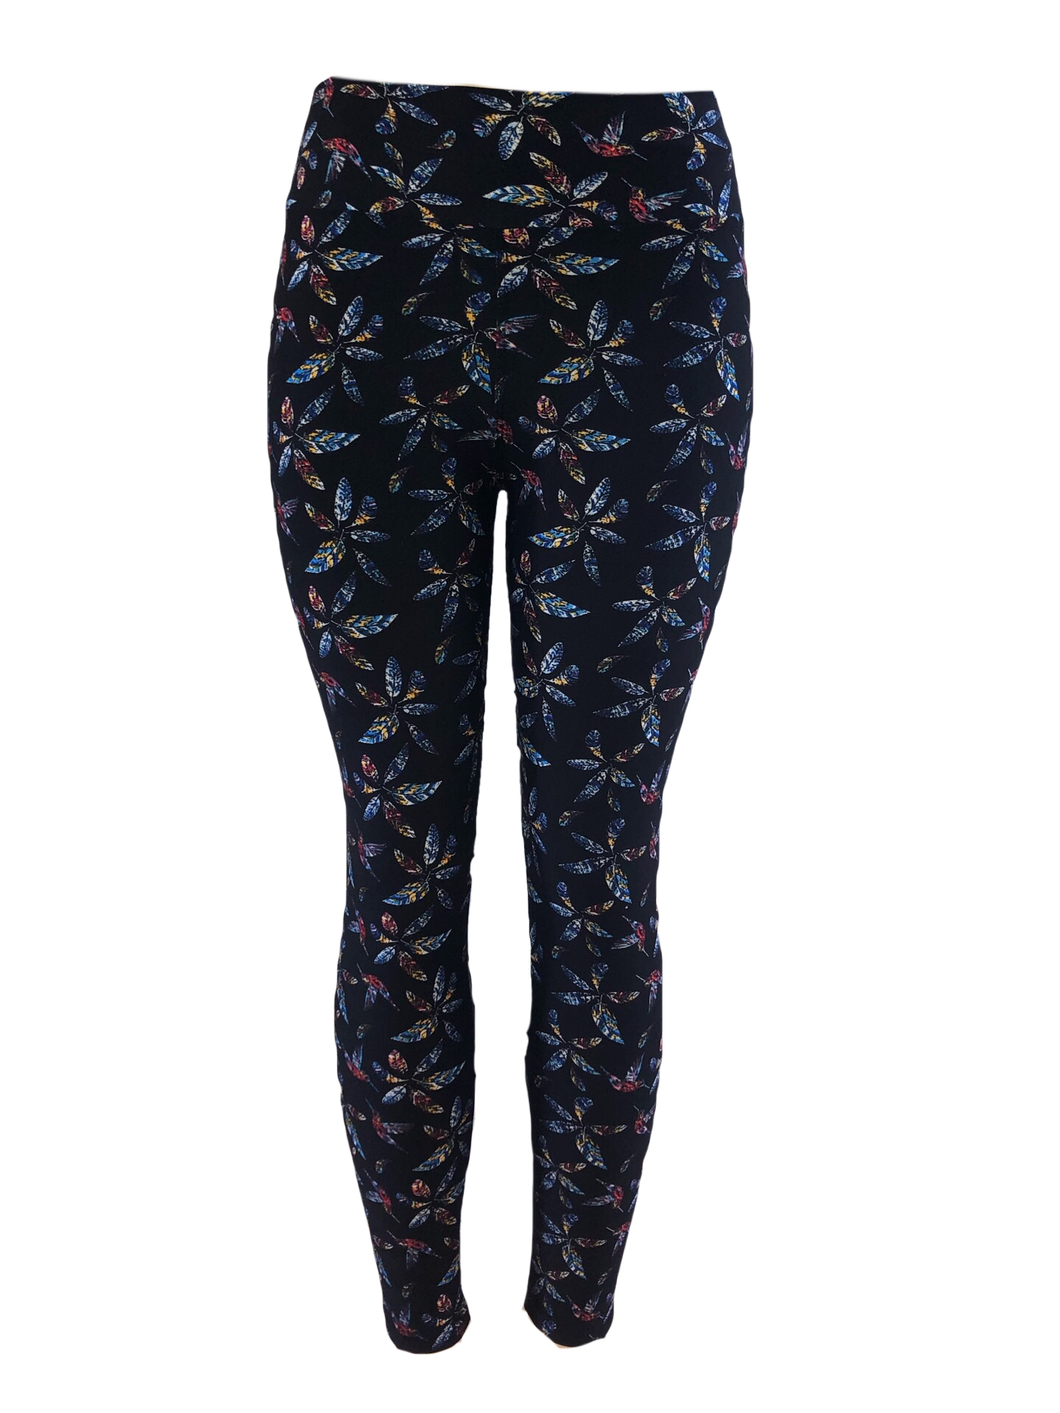 Natopia The Birds And The Leaves Leggings One Size Fits Size 8-14